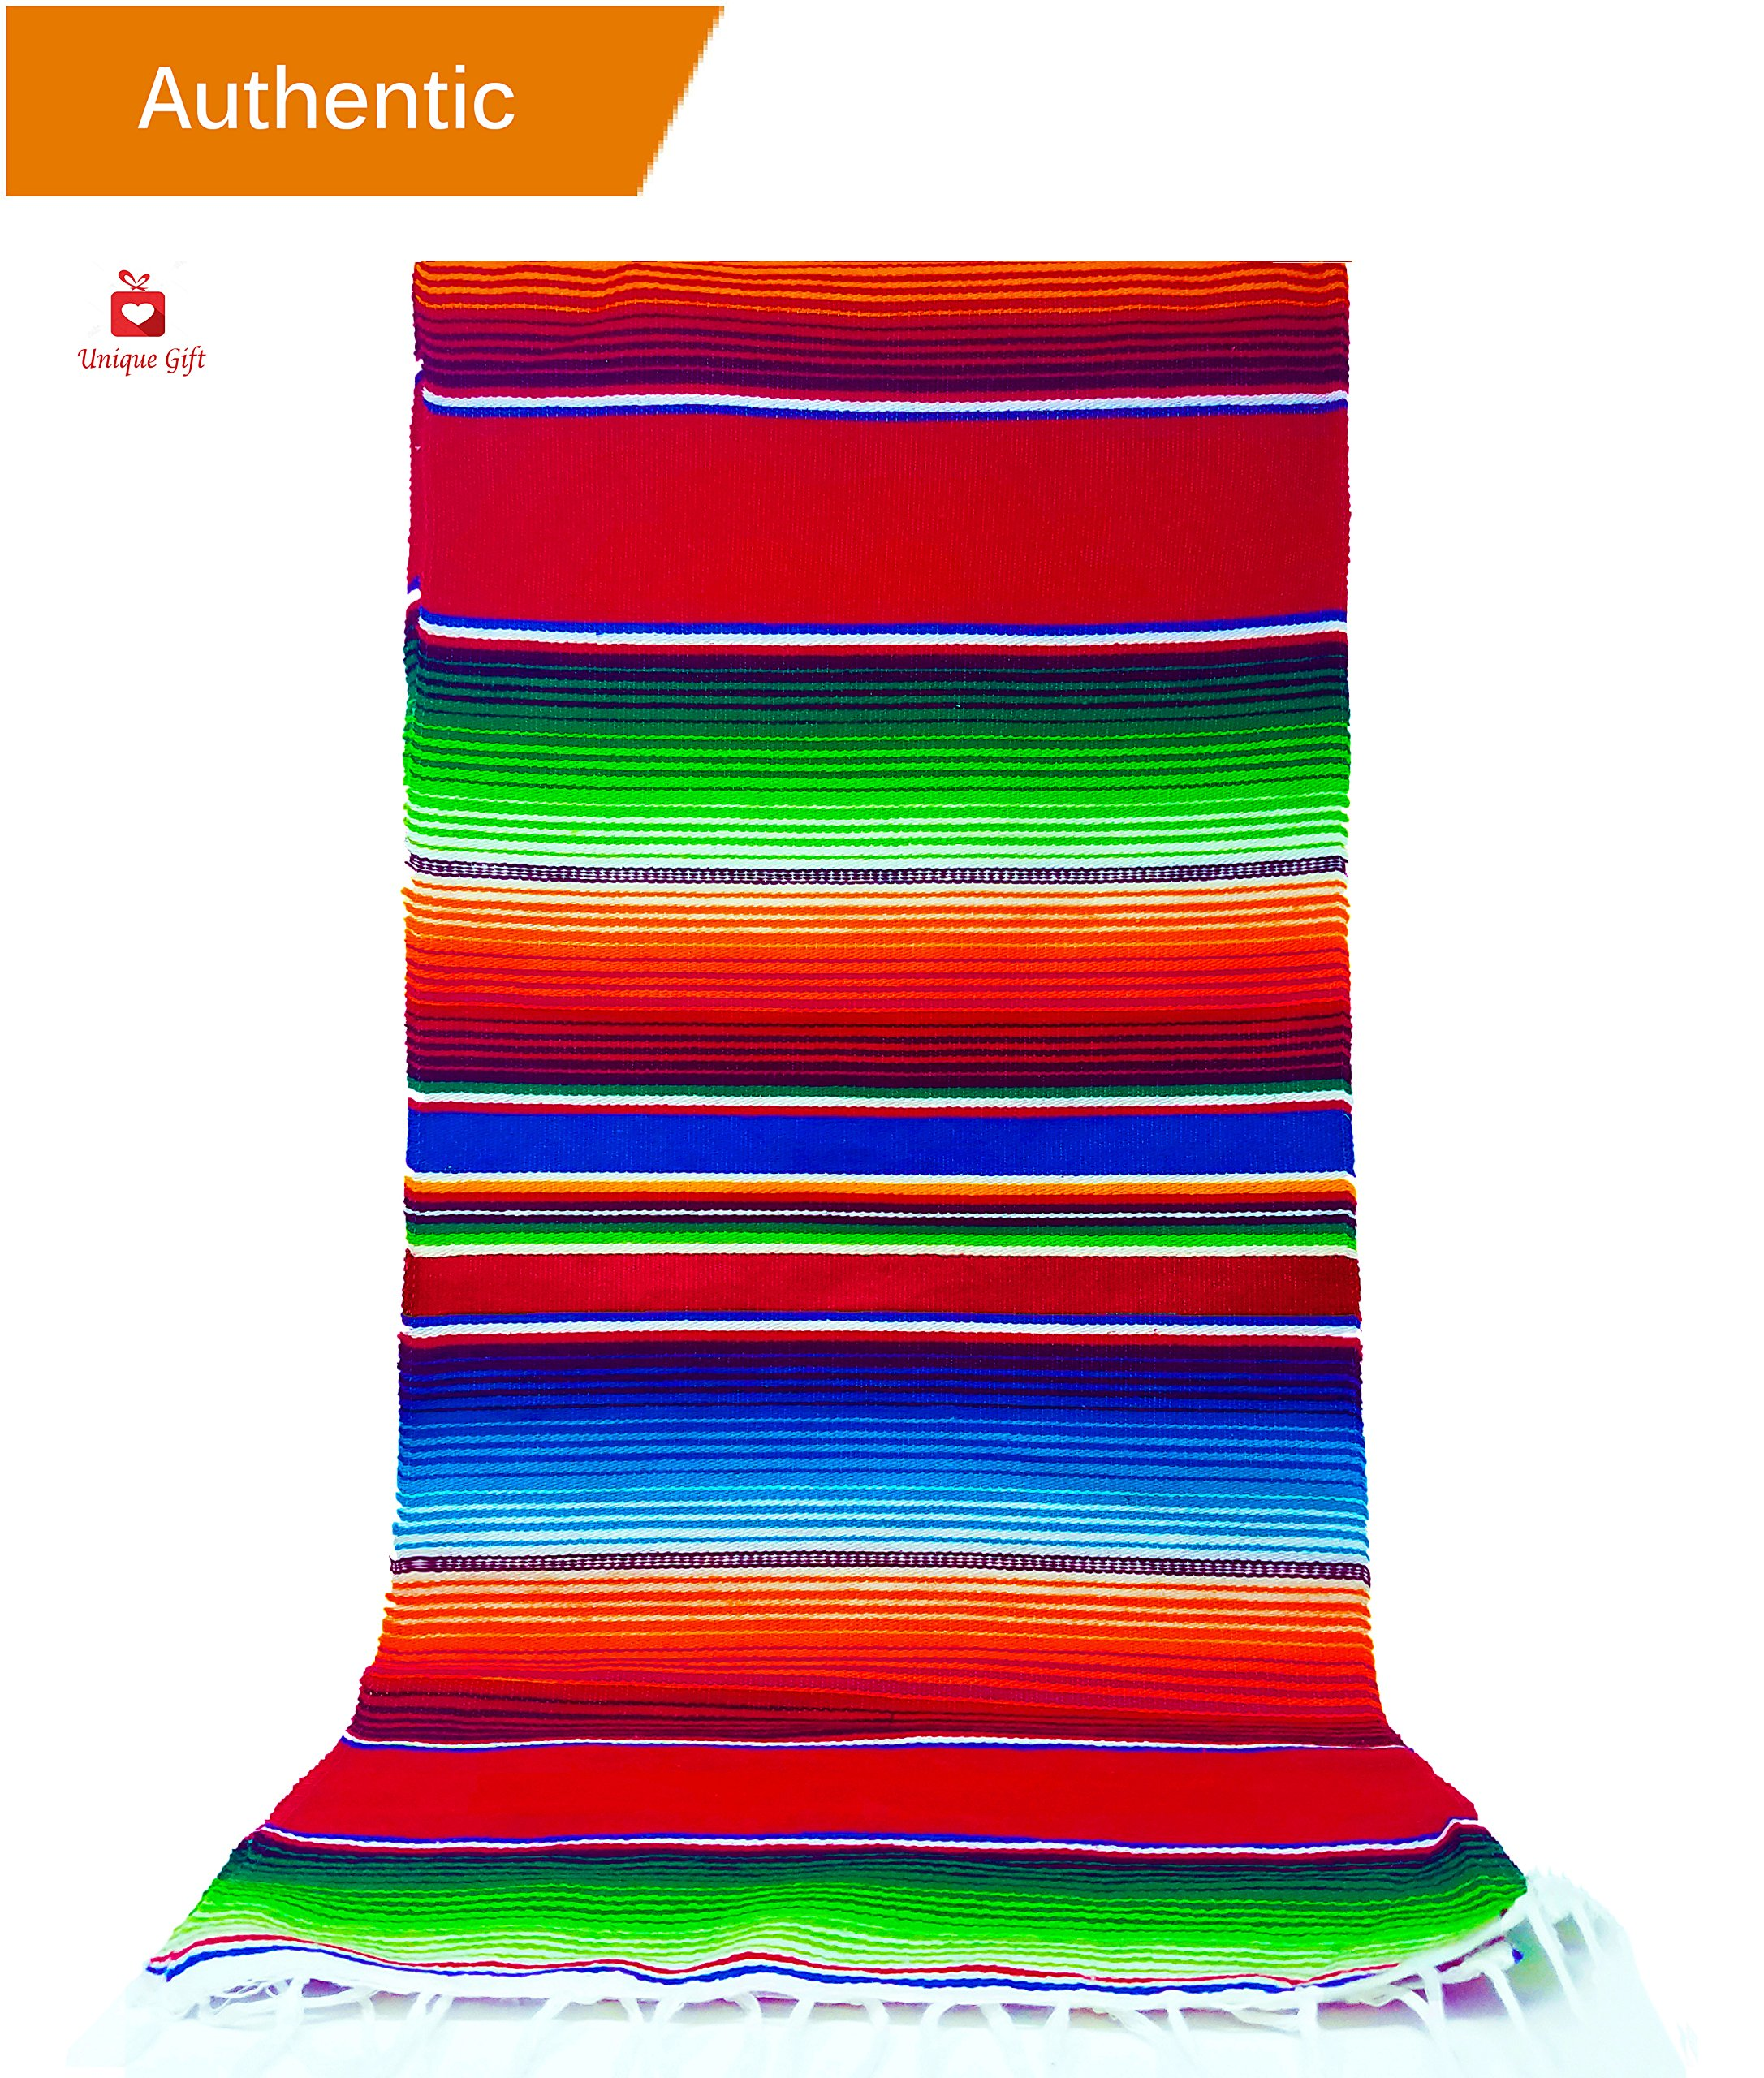 New | Alondra's Imports️ (84'' x 15'') Elegantly Handwoven, Genuine Serape Table Runner (Mexican Table Runner, Fiesta Table Runner, Mexican Blanket, Zarape, Serape) (Lustrous Ruby Red) by Alondra's Imports️